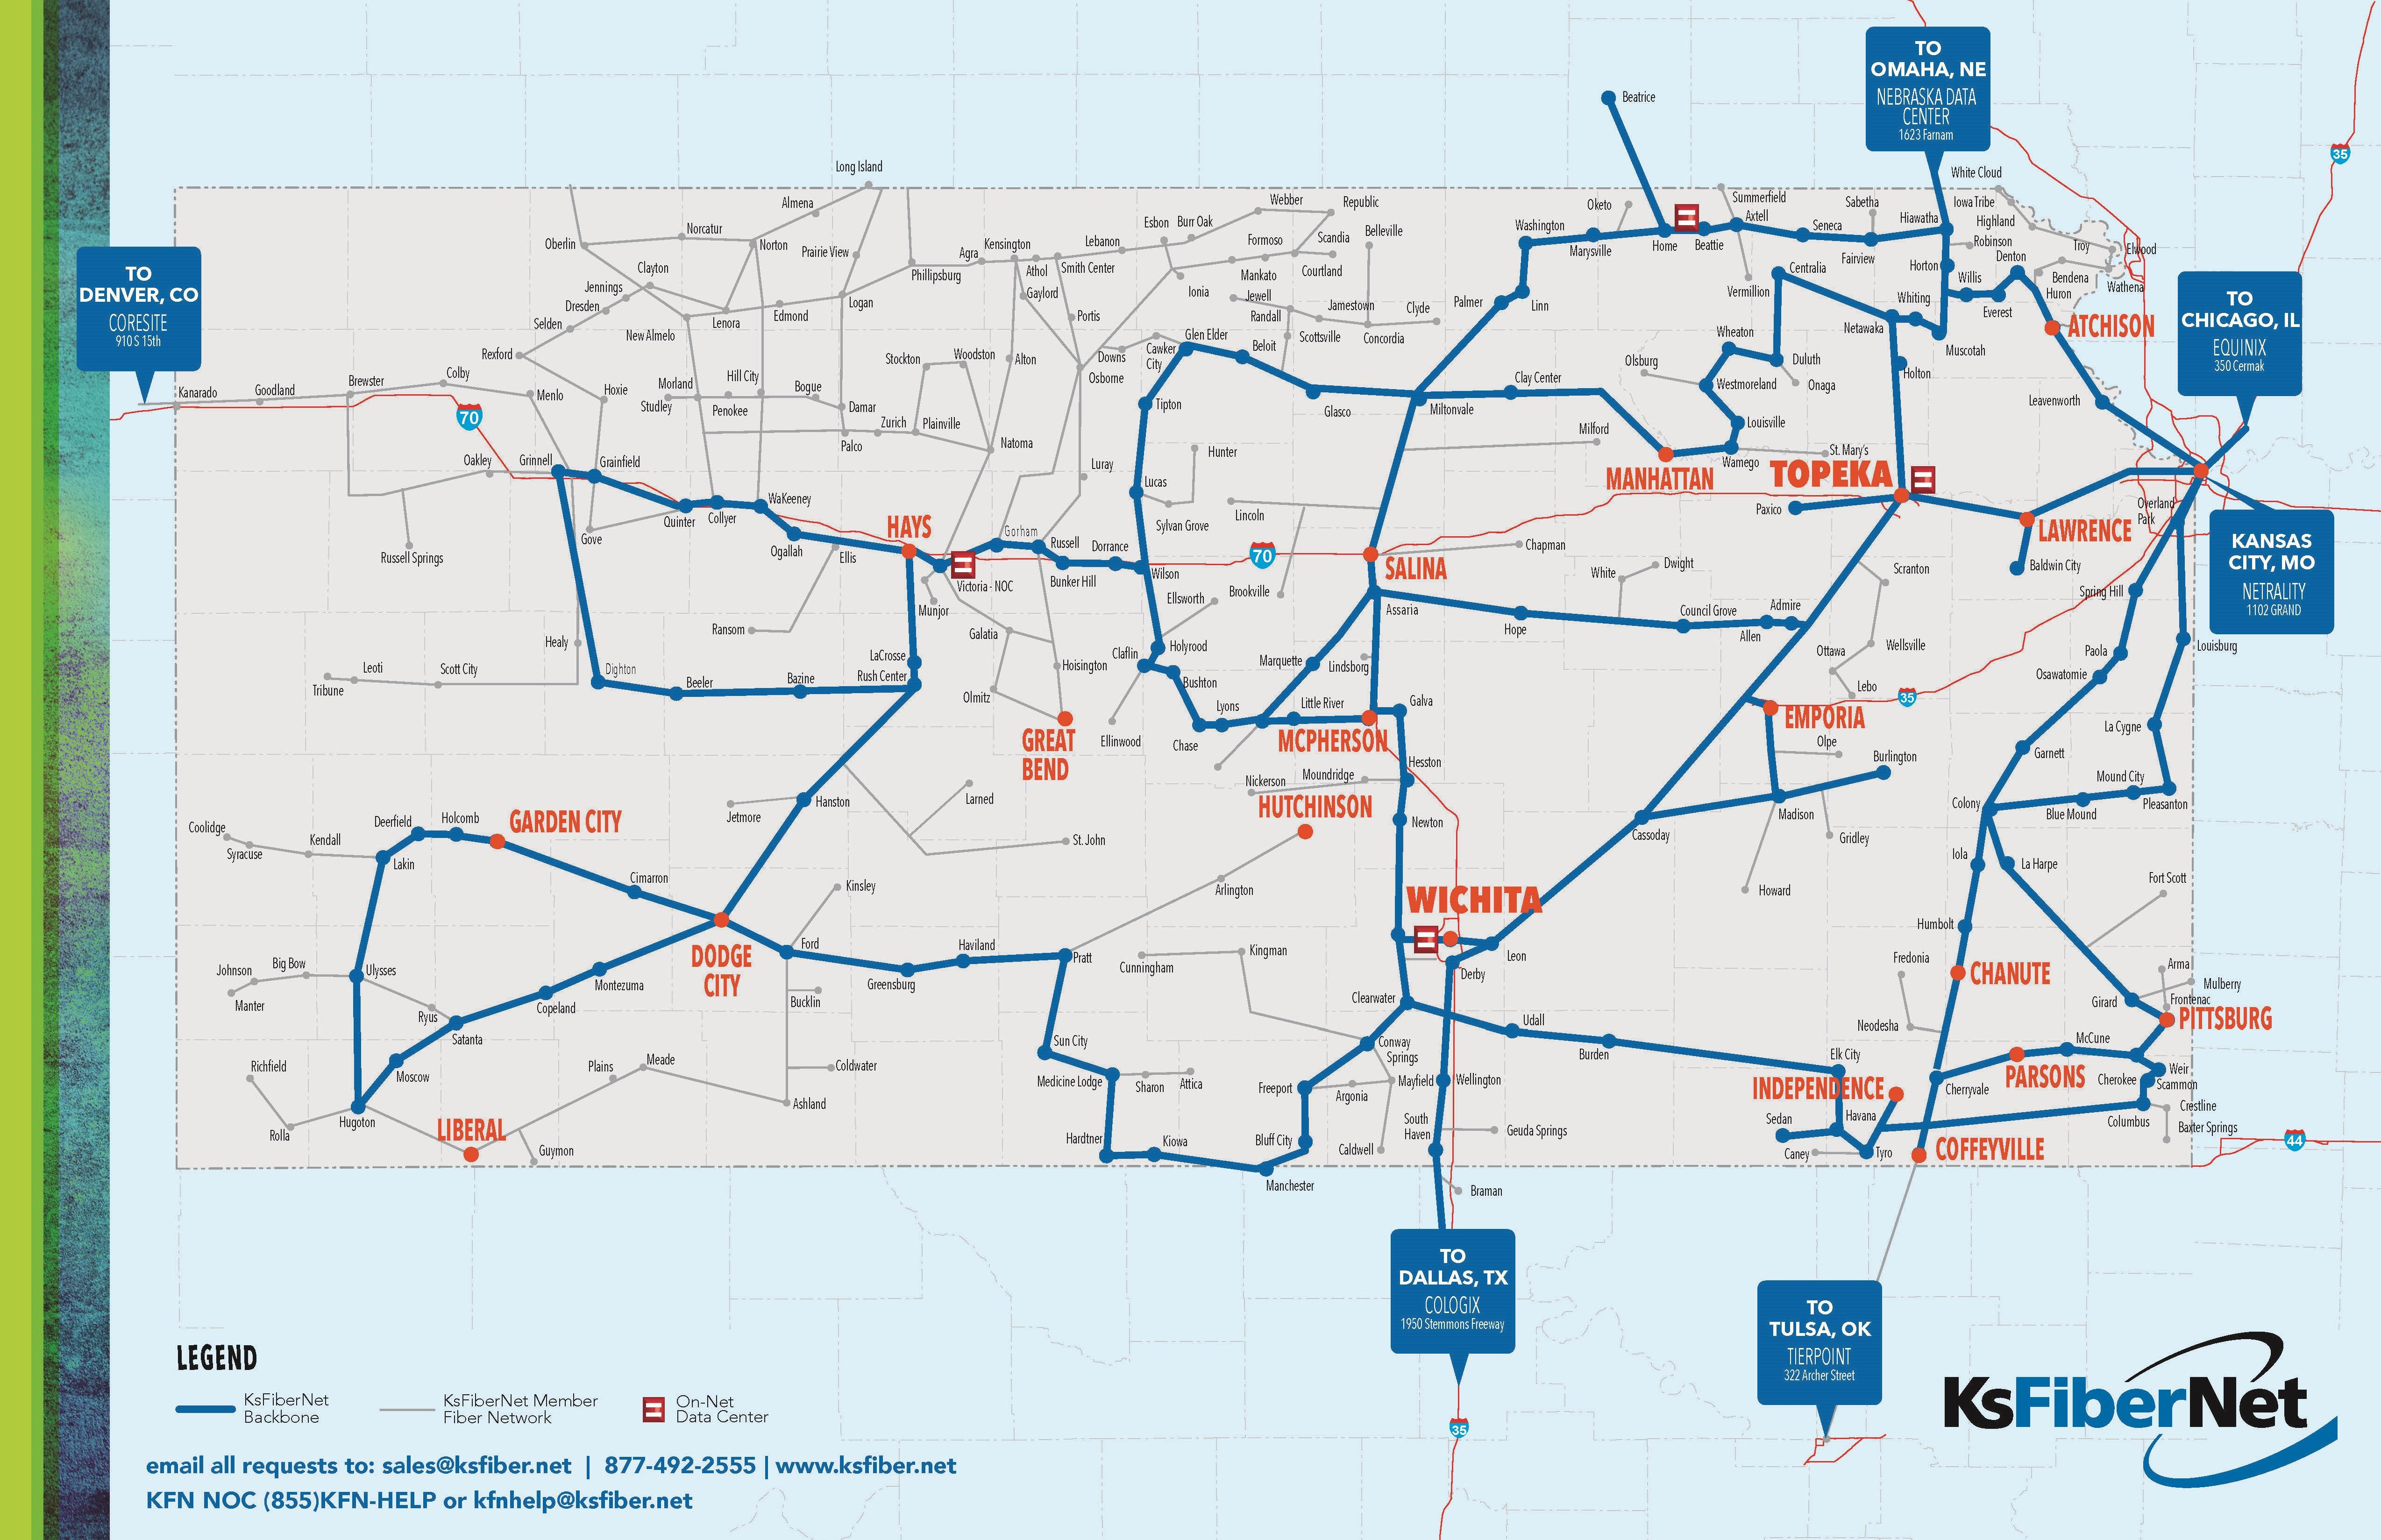 Our Fiber Network | Kansas Fiber Network | KsFiberNet on sprint fiber map, financial map, water distribution map, uk rail map, us open map, southern railway map, petra map, concept map, mexico city street map,